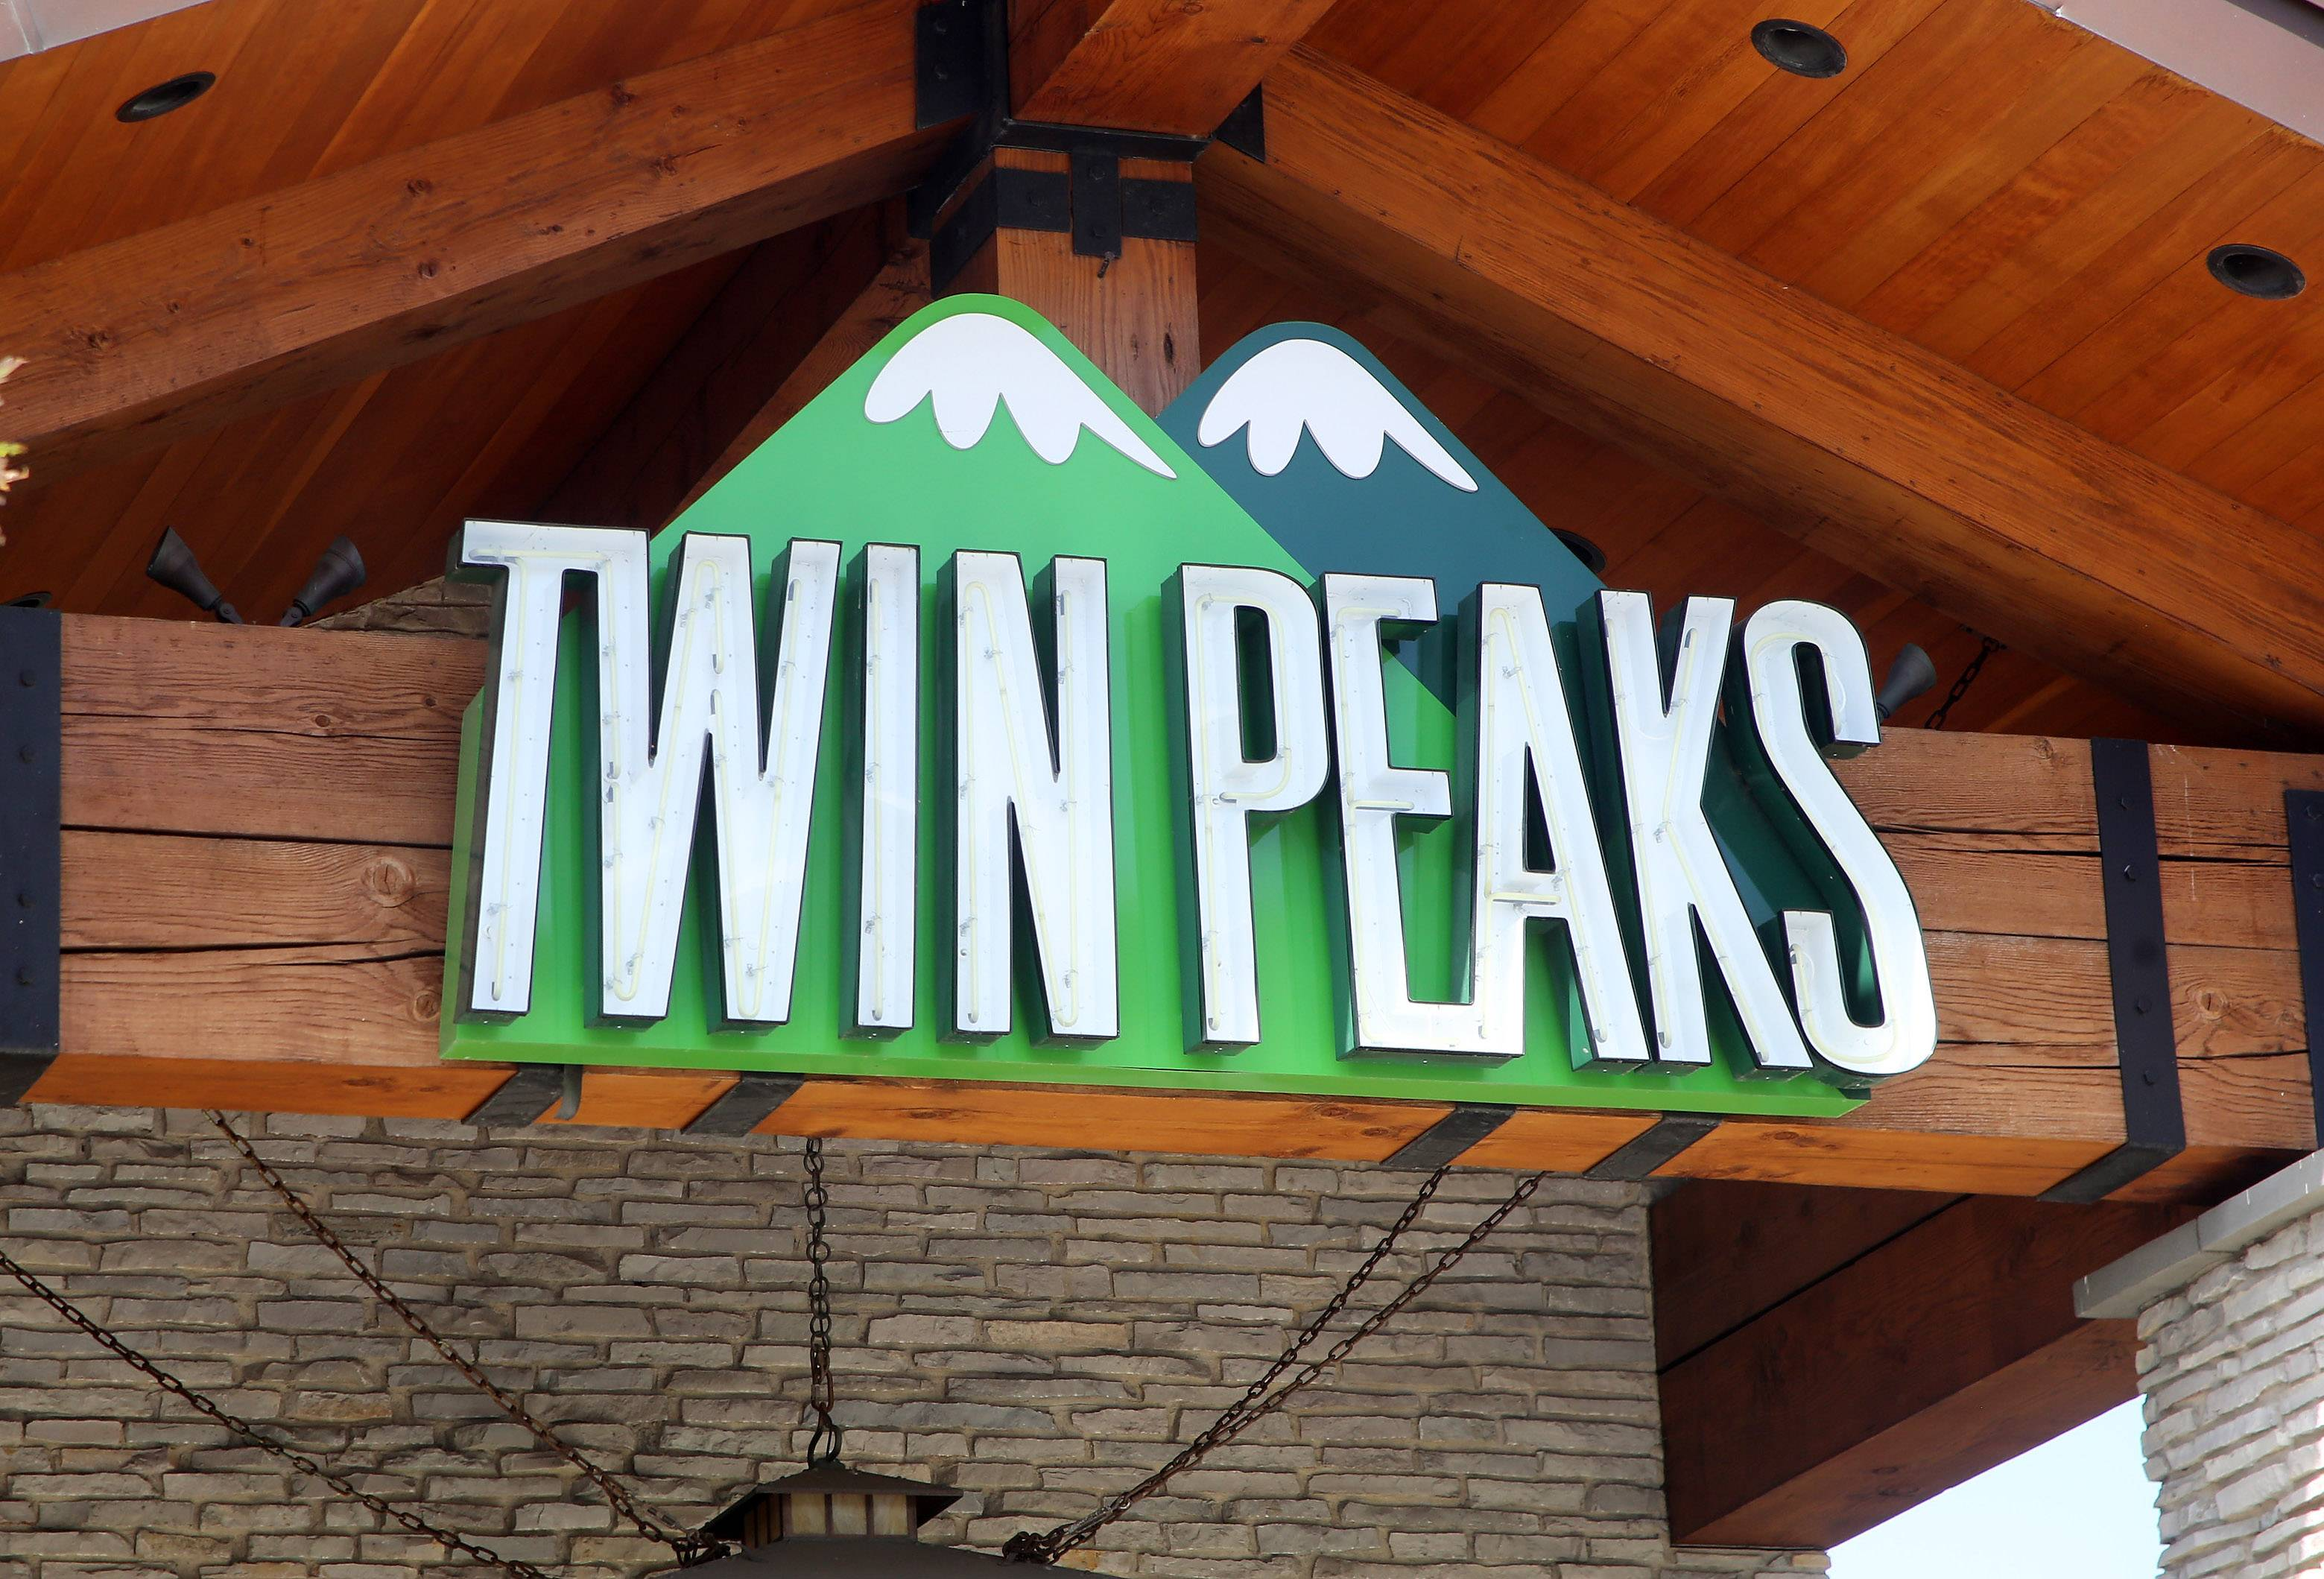 Two Twin Peaks waitresses at the Orland Park restaurant say they were forced to line up for weekly body evaluations, wear lingerie that exposed their buttocks and change clothes in full view kitchen staff, according to a complaint with the Equal Employment Opportunity Commission. Their attorney said the behavior is a widespread part of the corporate culture approved by Twin Peaks' ownership.